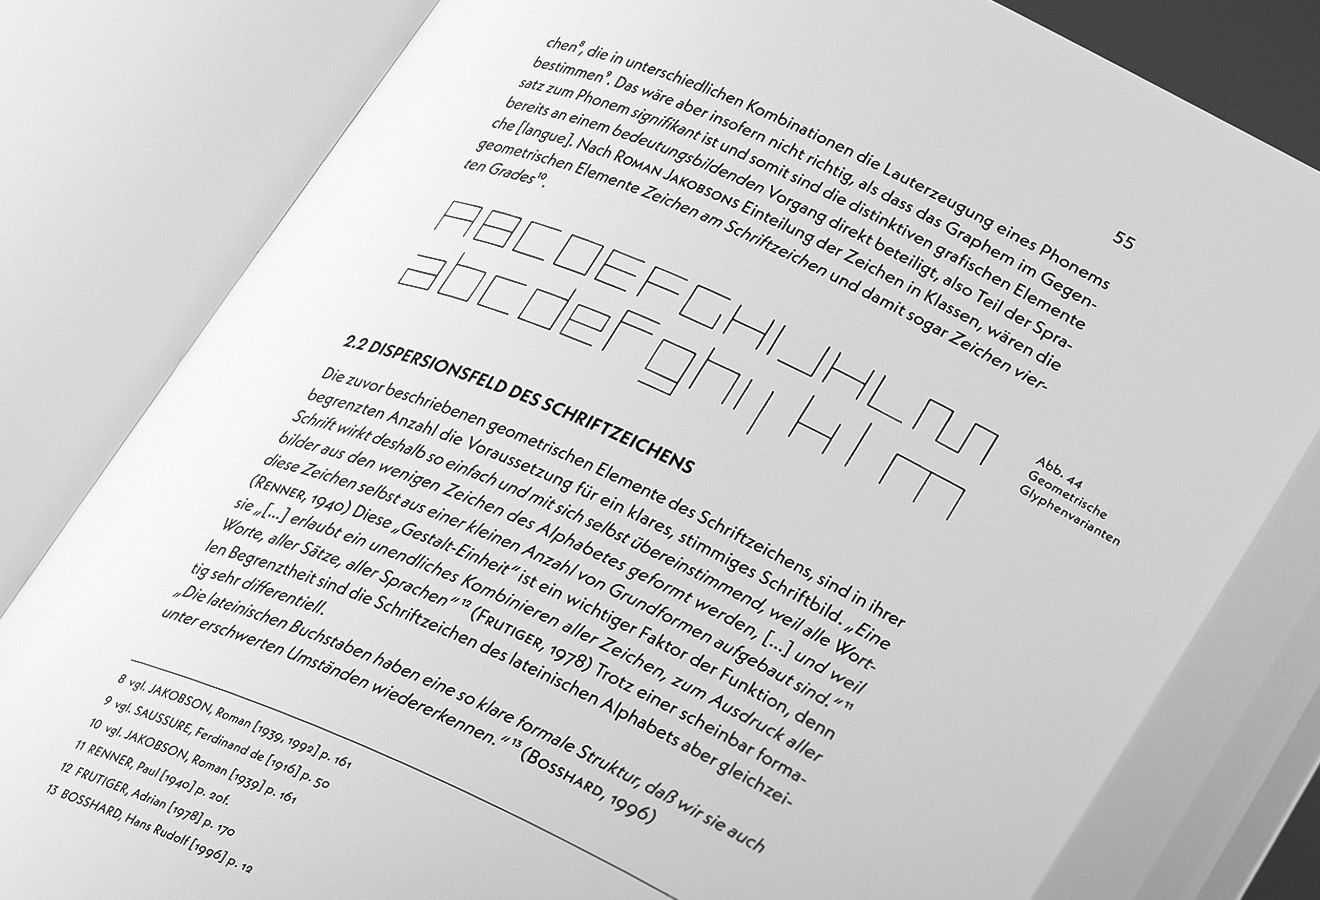 **Thesis in Neue Kabel?** Marc Schütz fit out Neue Kabel with multiple weights, respective italics and small caps along with seven sets of figures—it's all there to set an encyclopedia and other complex forms of text that need typographic emphasis and footnotes.